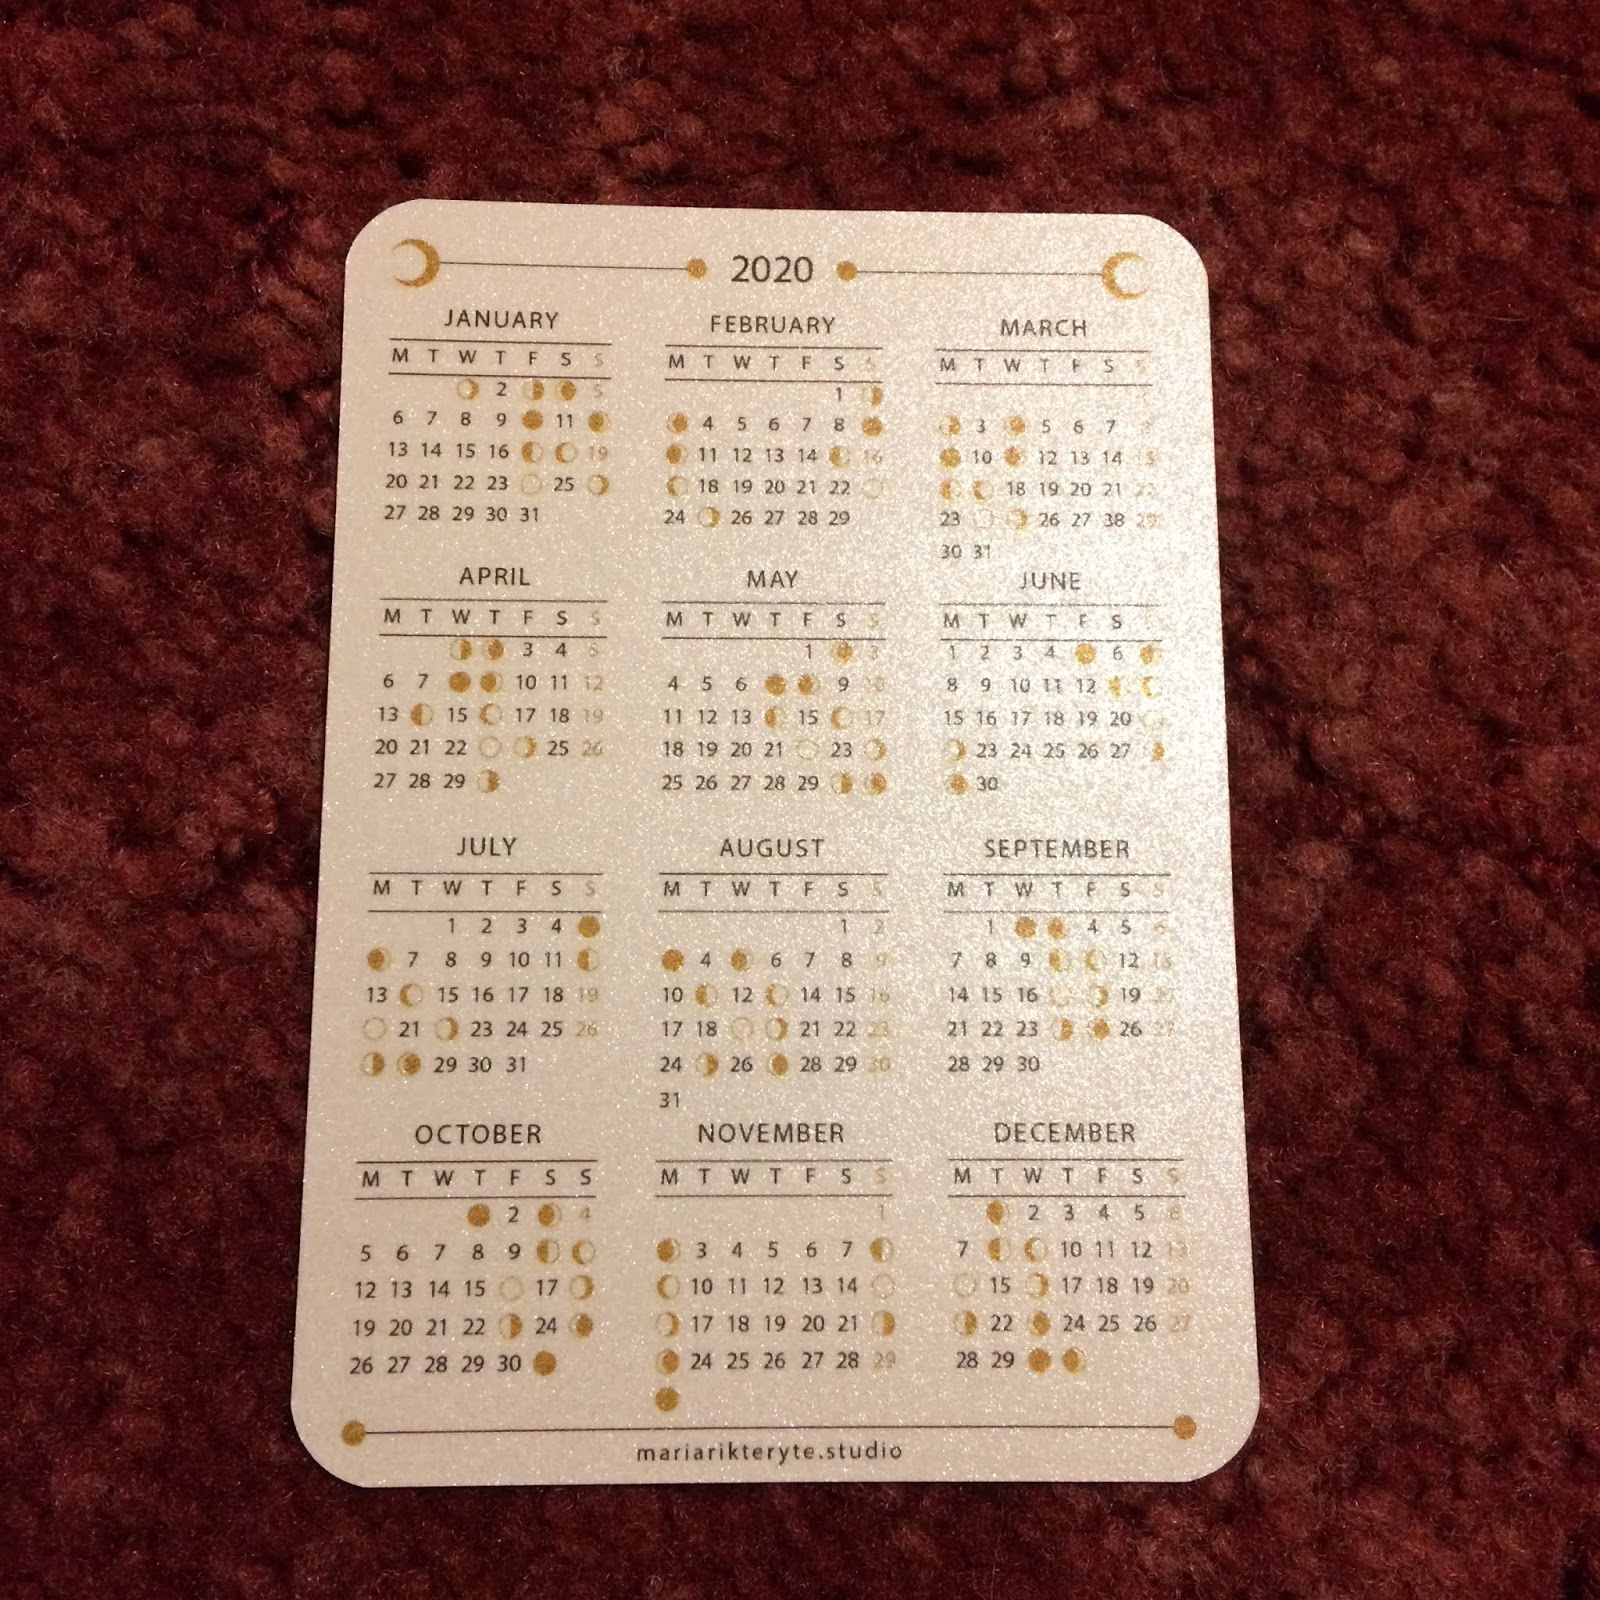 A playing card sized 2020 lunar calendar, showing the dates of different phases of the Moon in the UK in 2020